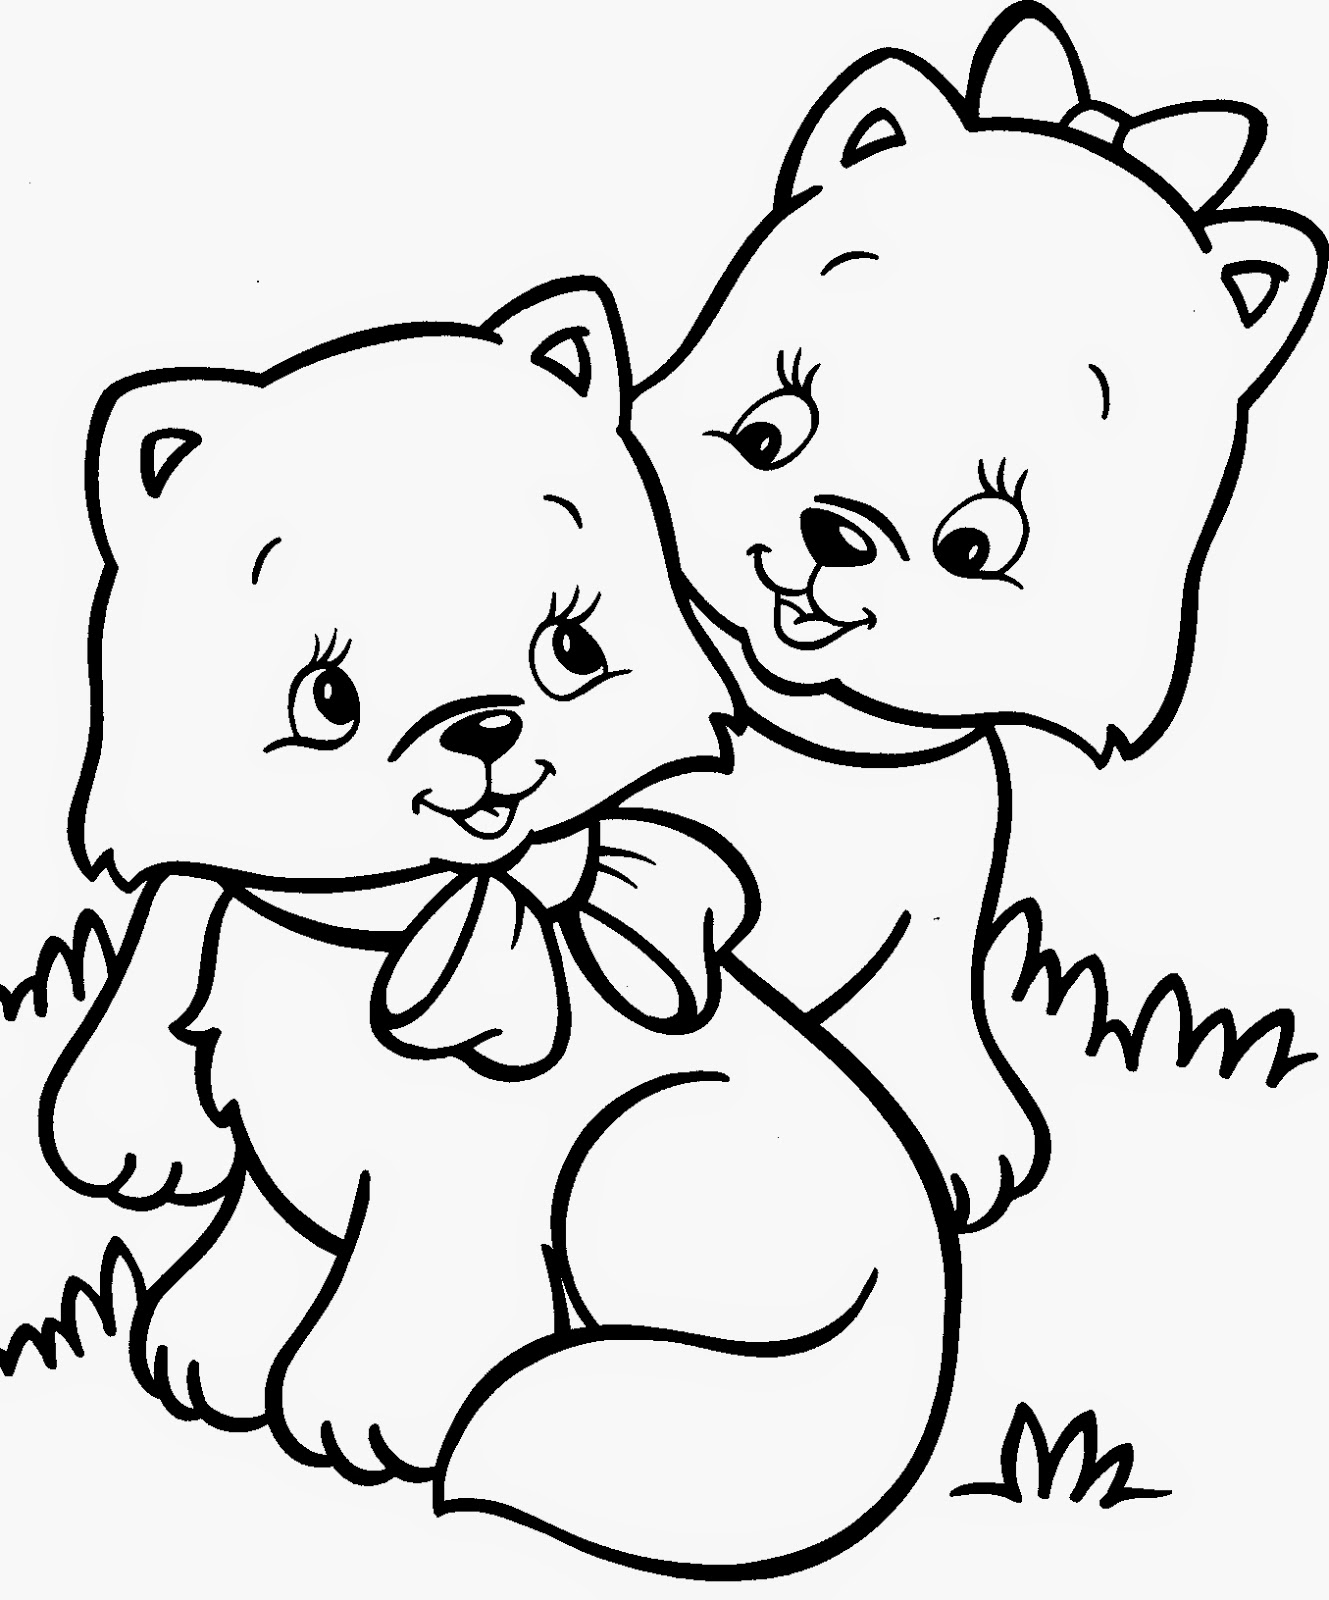 coloring pages kitten kitten coloring pages best coloring pages for kids pages coloring kitten